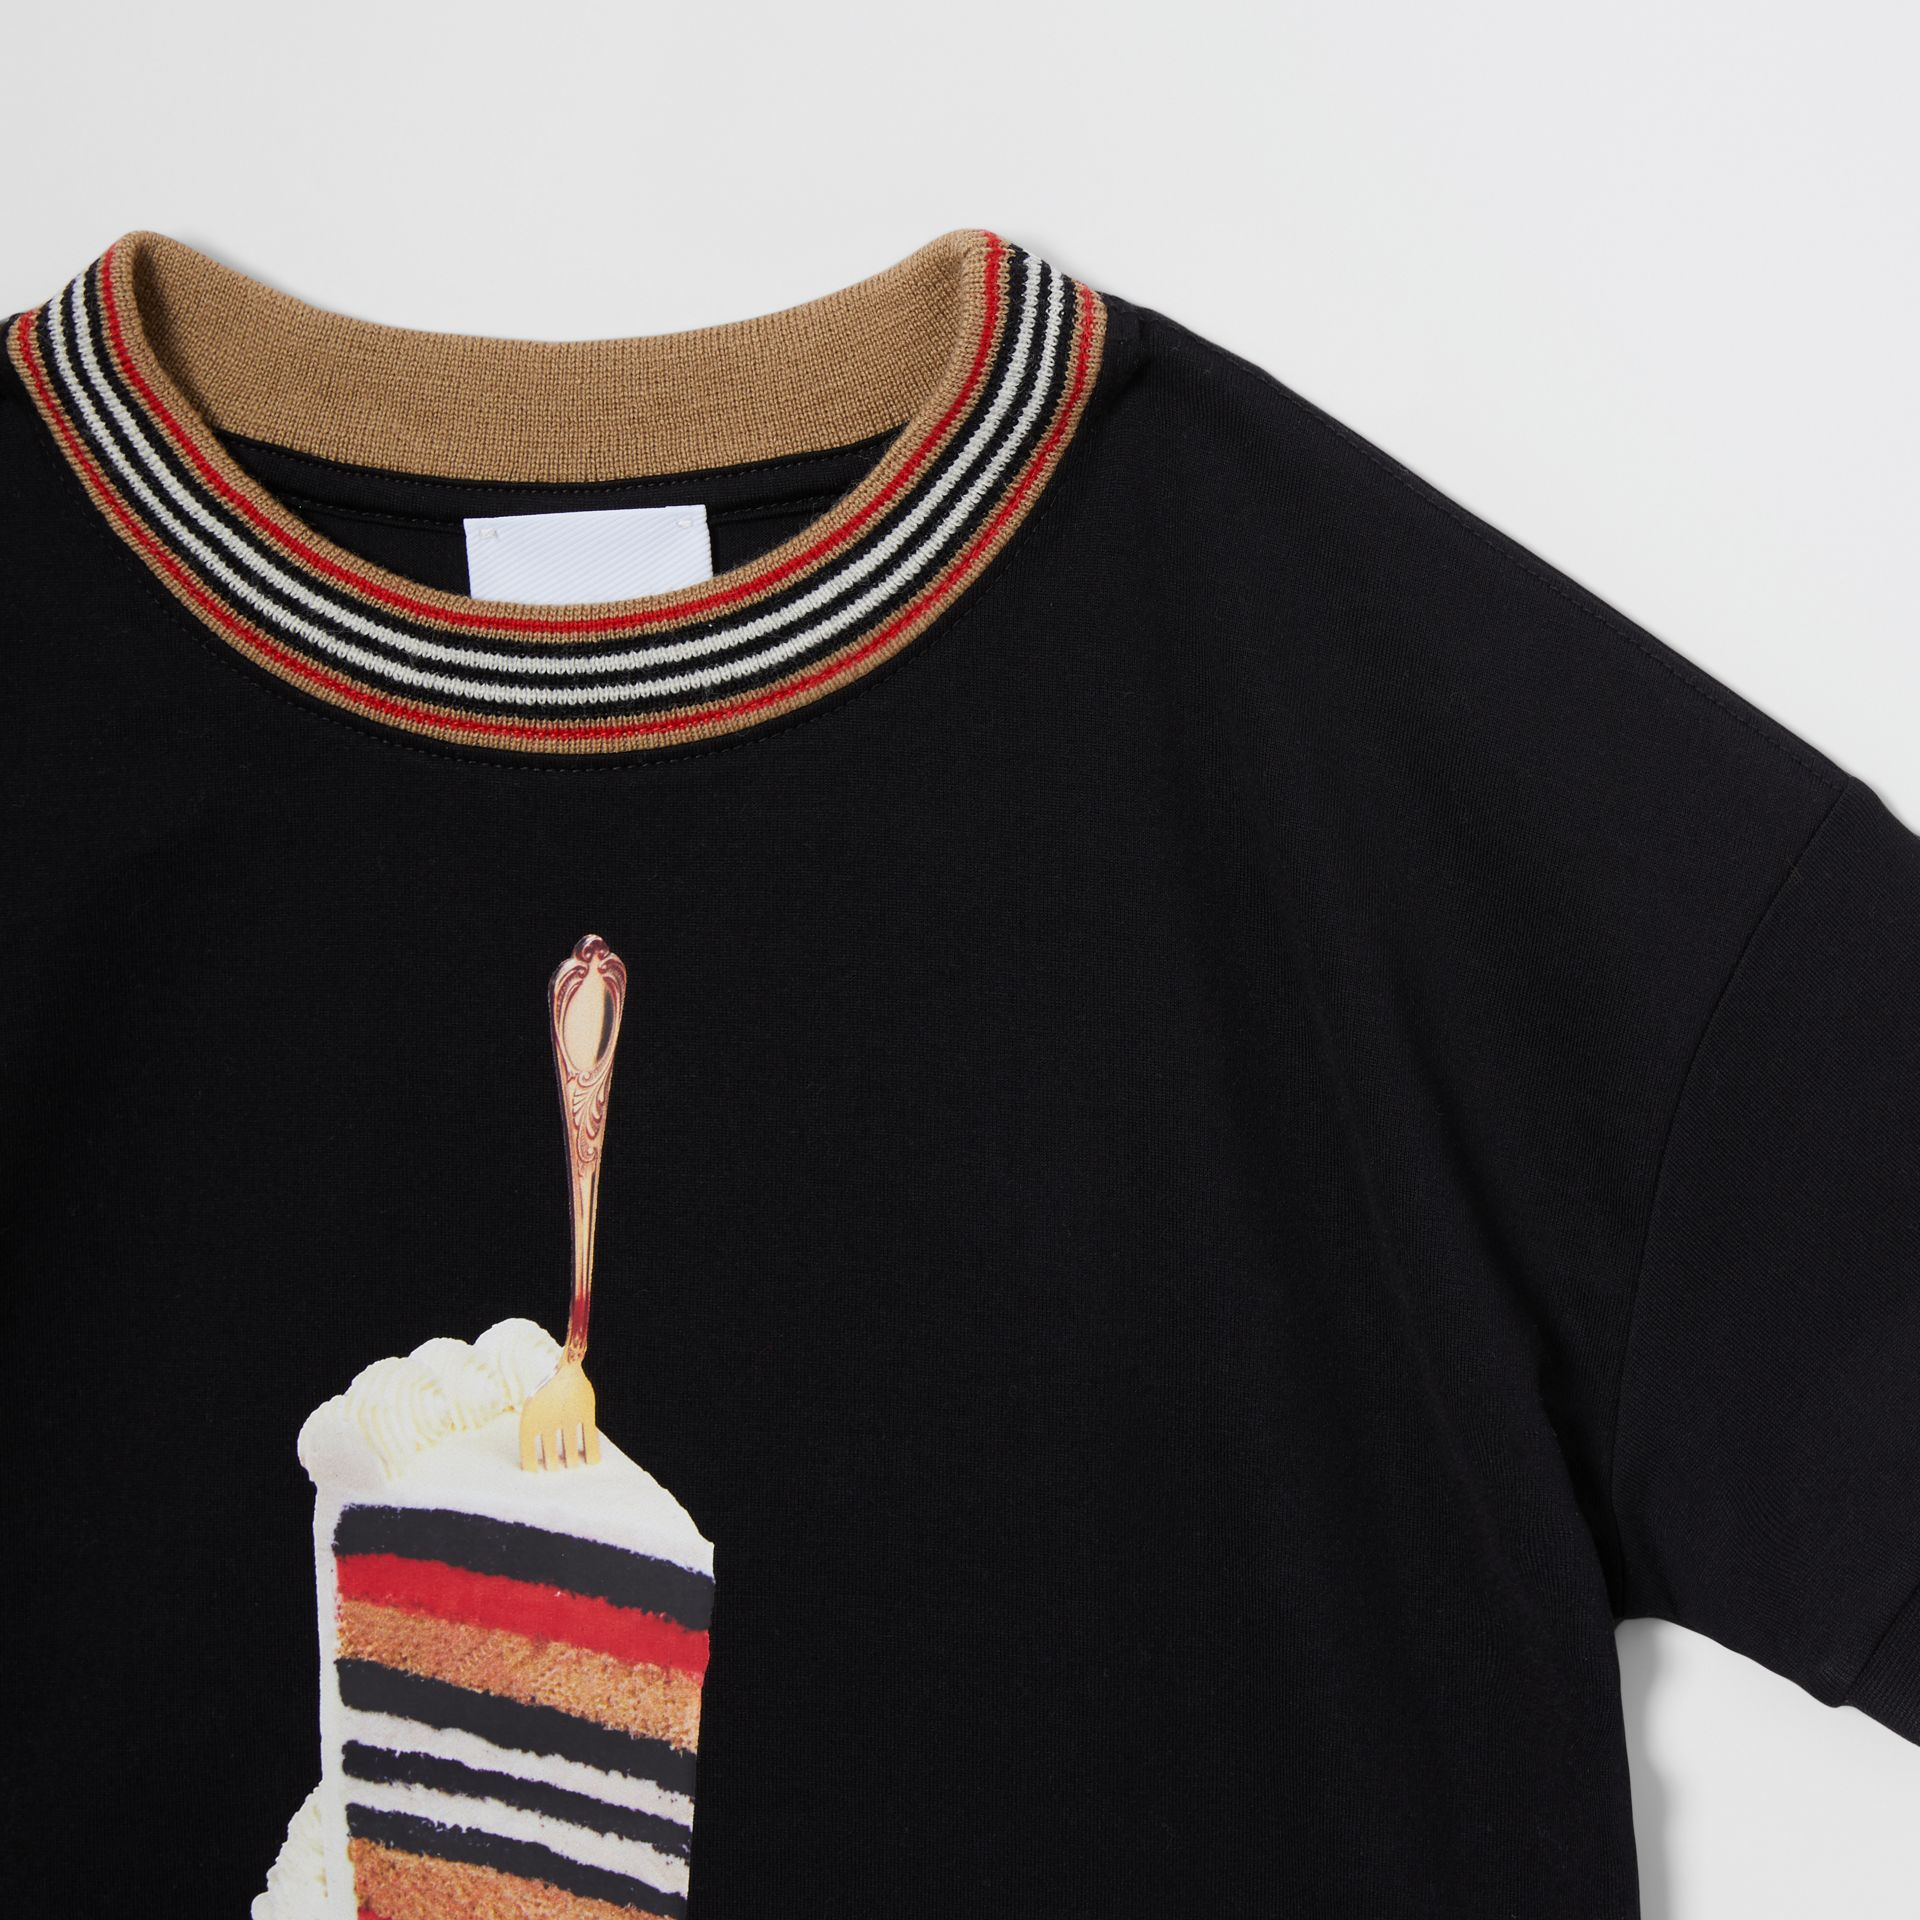 Cake Print Cotton T-shirt in Black | Burberry - gallery image 4